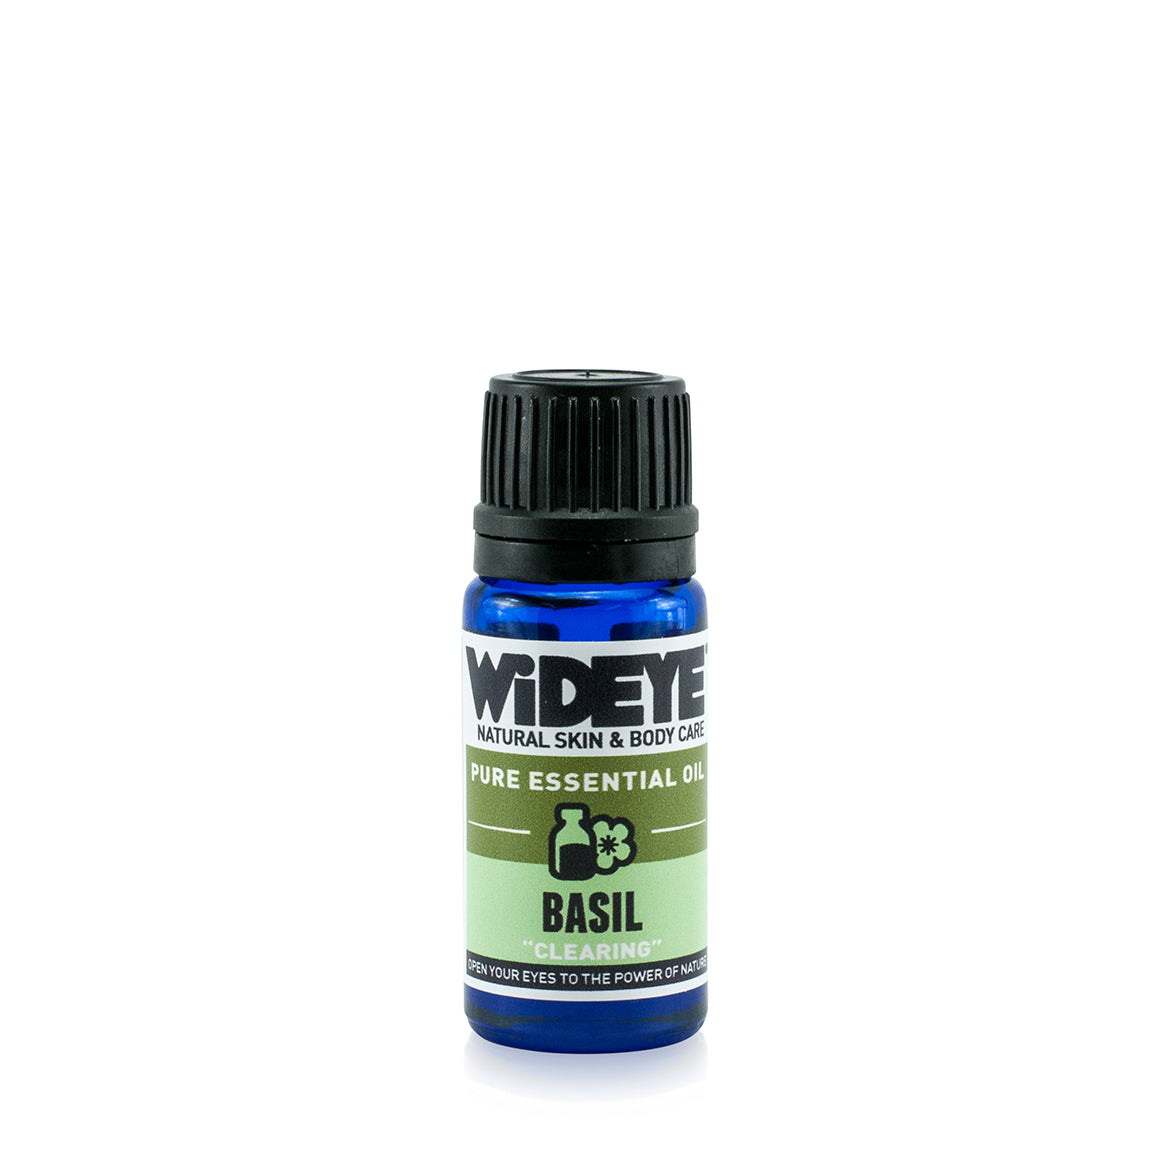 Natural vegan Basil essential oil in glass bottle for aromatherapy.